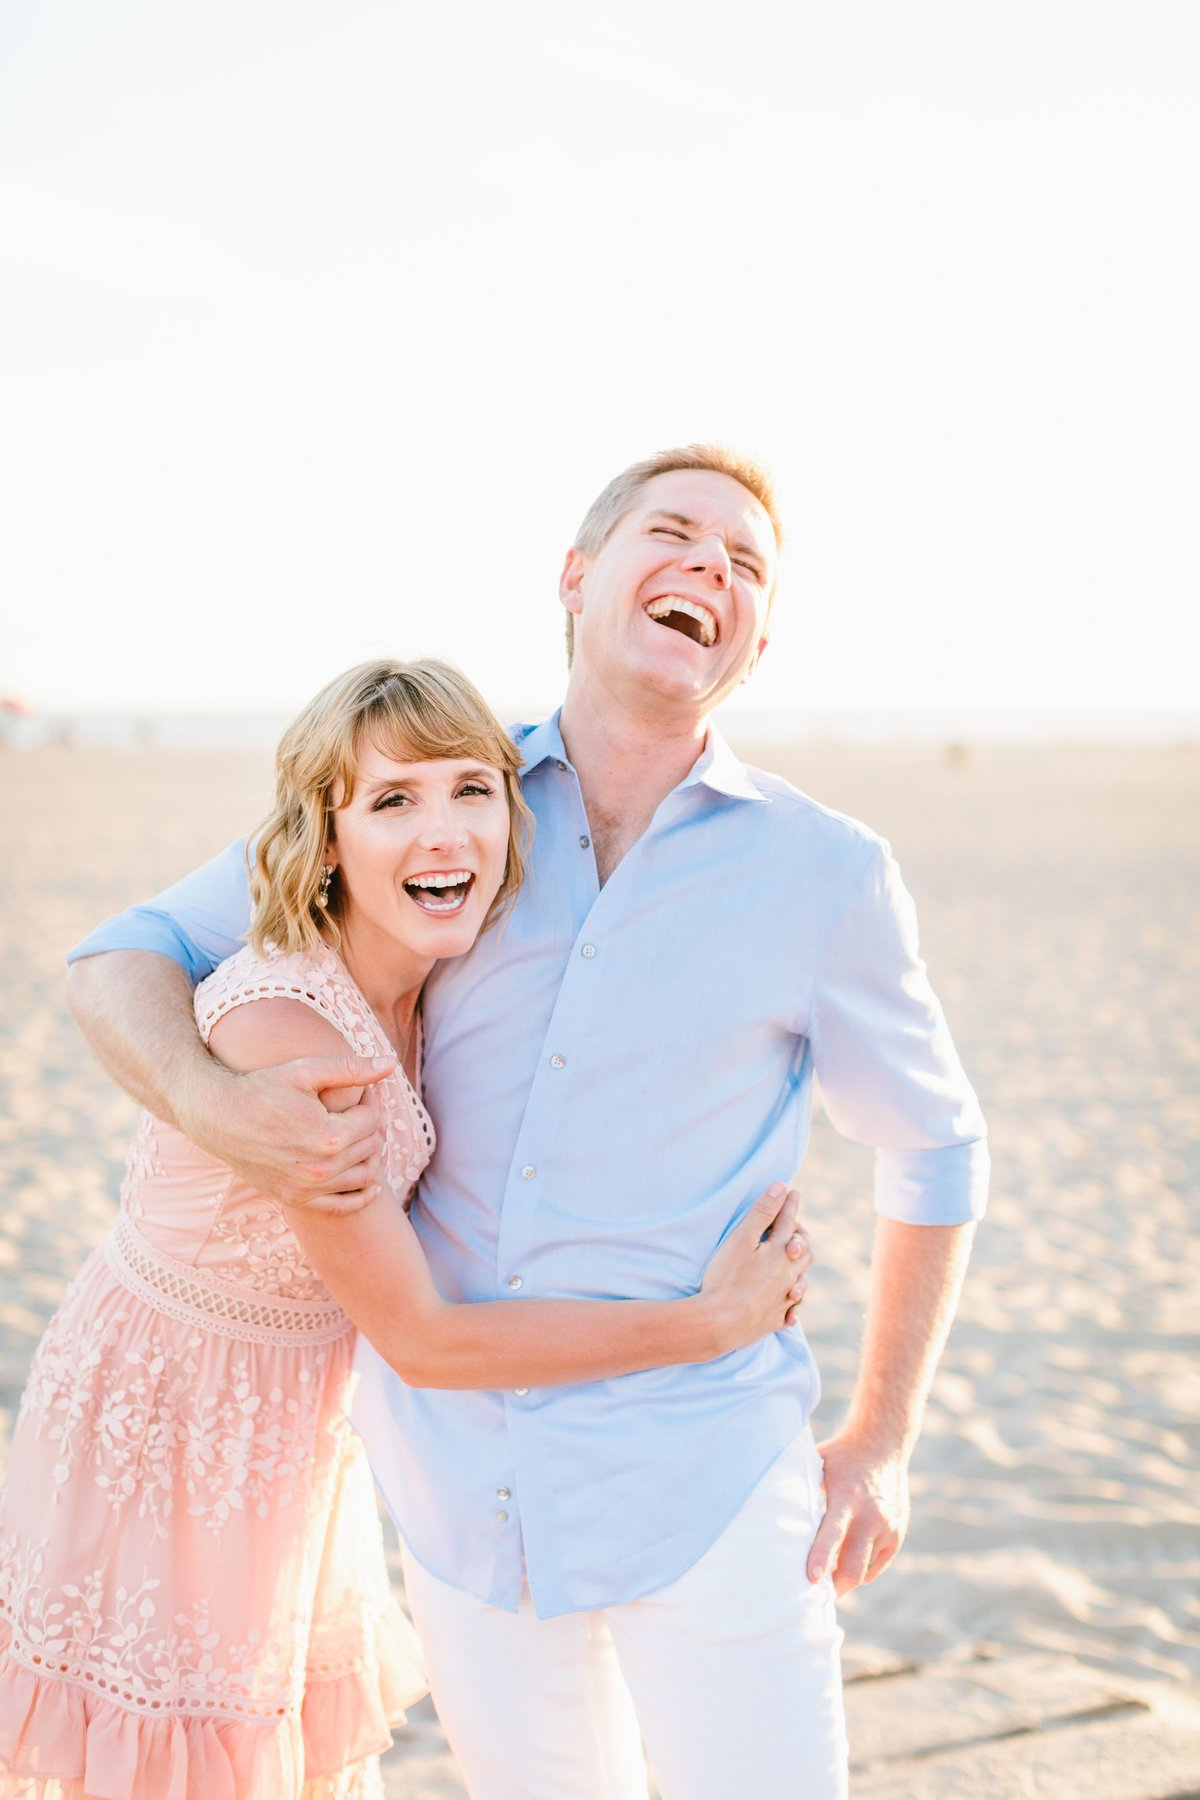 Best California Engagement Photographer-Jodee Debes Photography-198